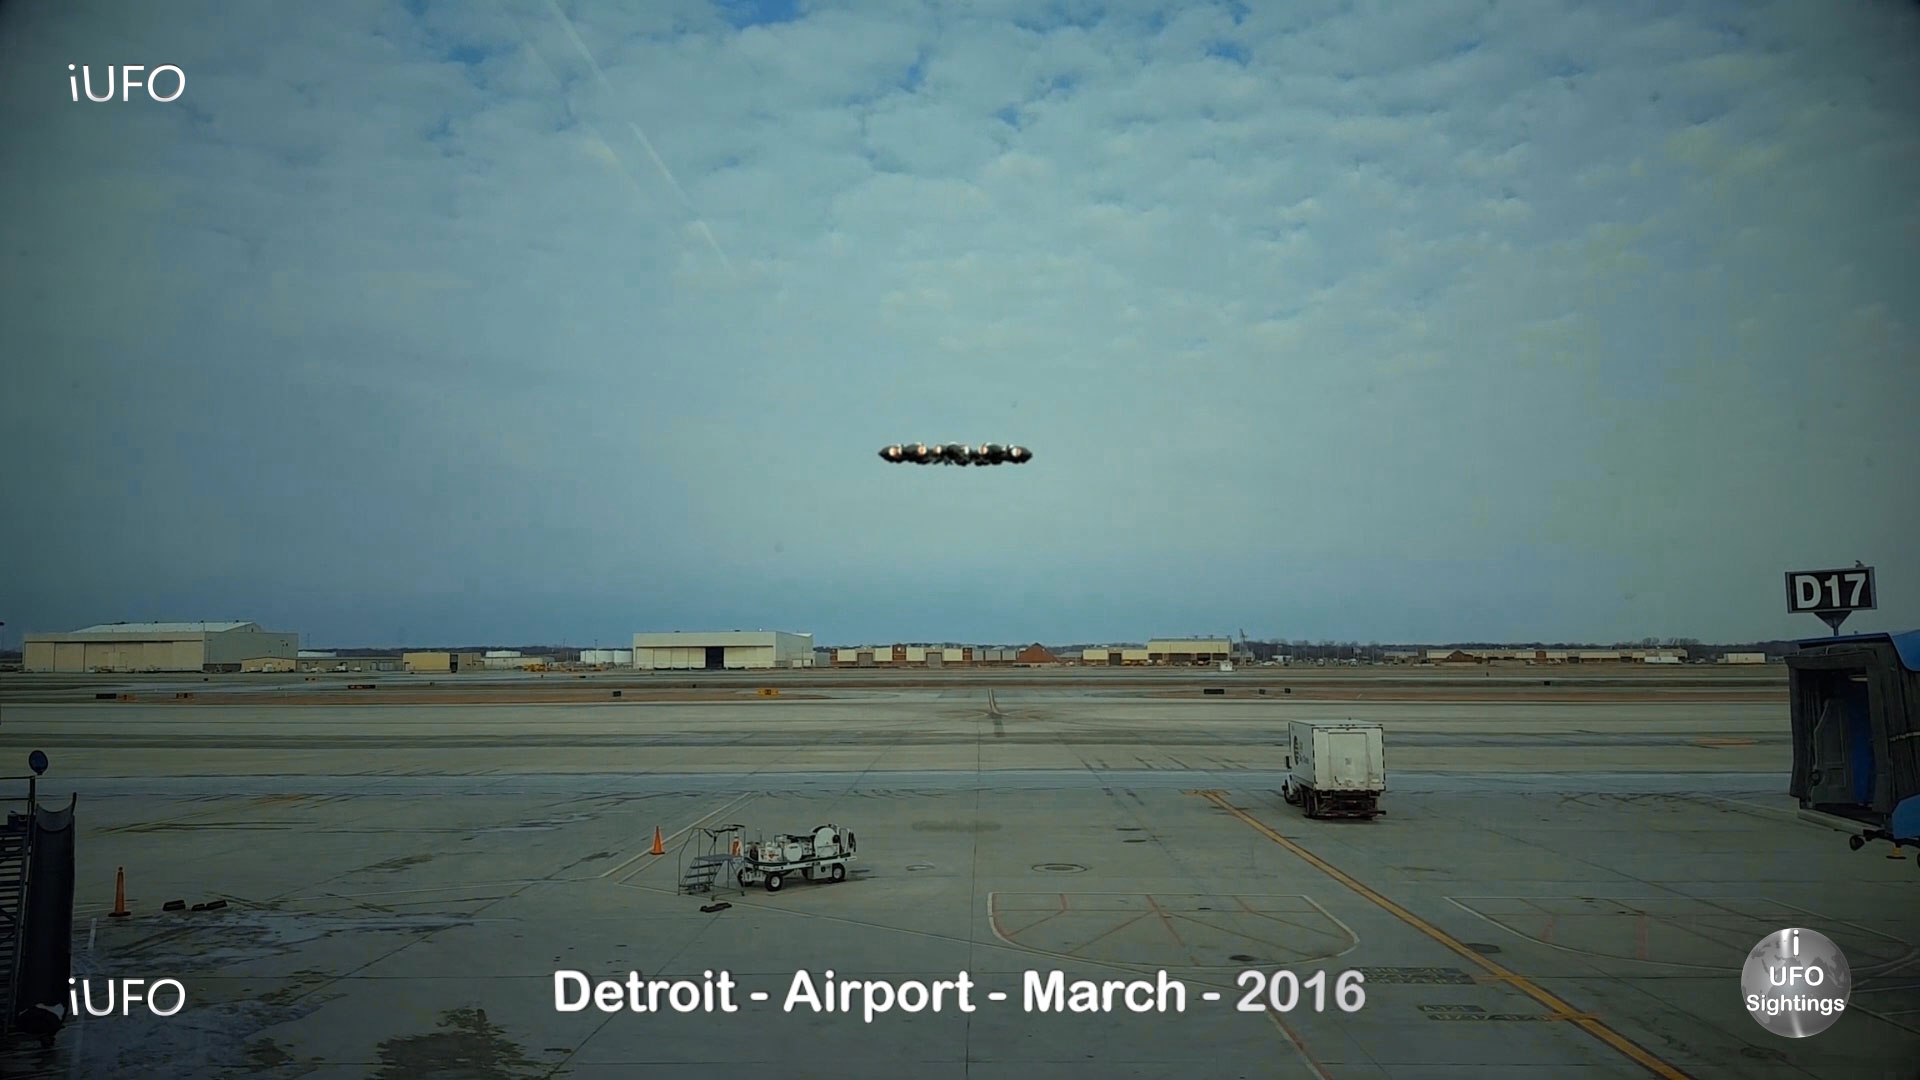 UFO-Sightings-UFO-Spotted-In-Detroit-Michigan-Las-Vegan-and-Airport-UFO